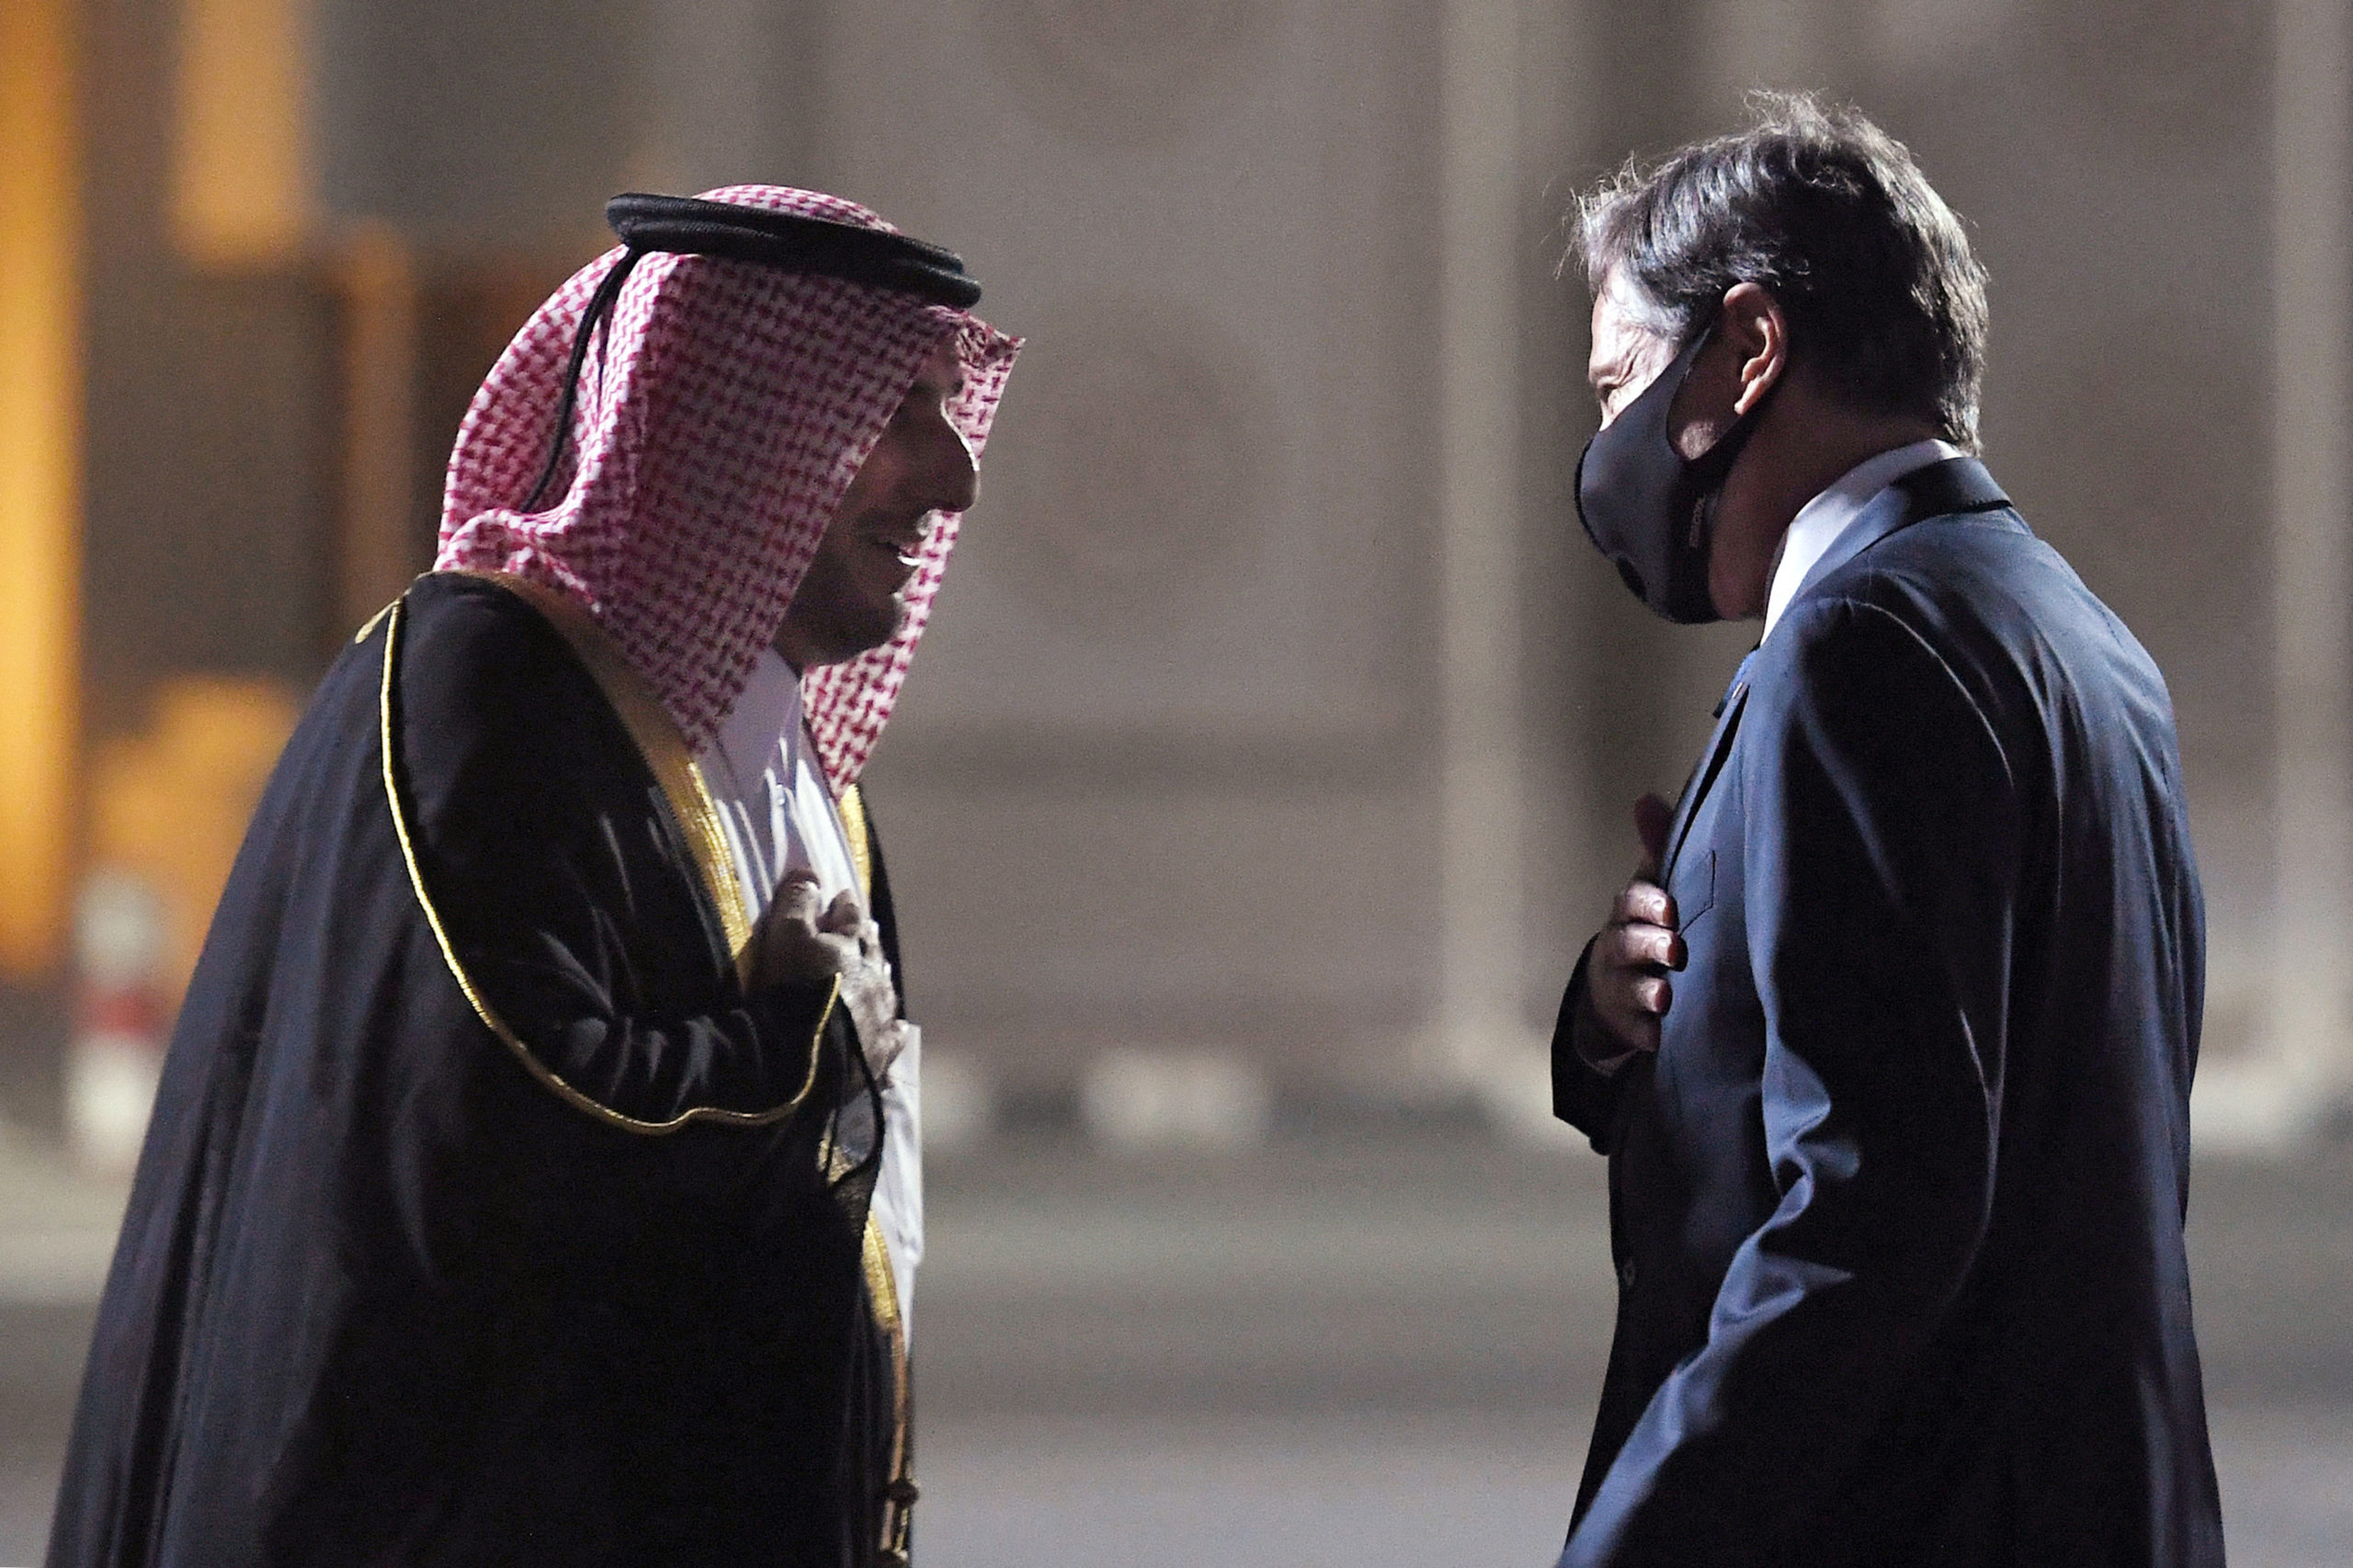 US Secretary of State Antony Blinken is welcomed upon his arrival by MFA Director of Protocol Ambassador Ibrahim Fakhro at Old Doha Airport in Qatar's capital on September 6, 2021. (Photo by OLIVIER DOULIERY/POOL/AFP via Getty Images)